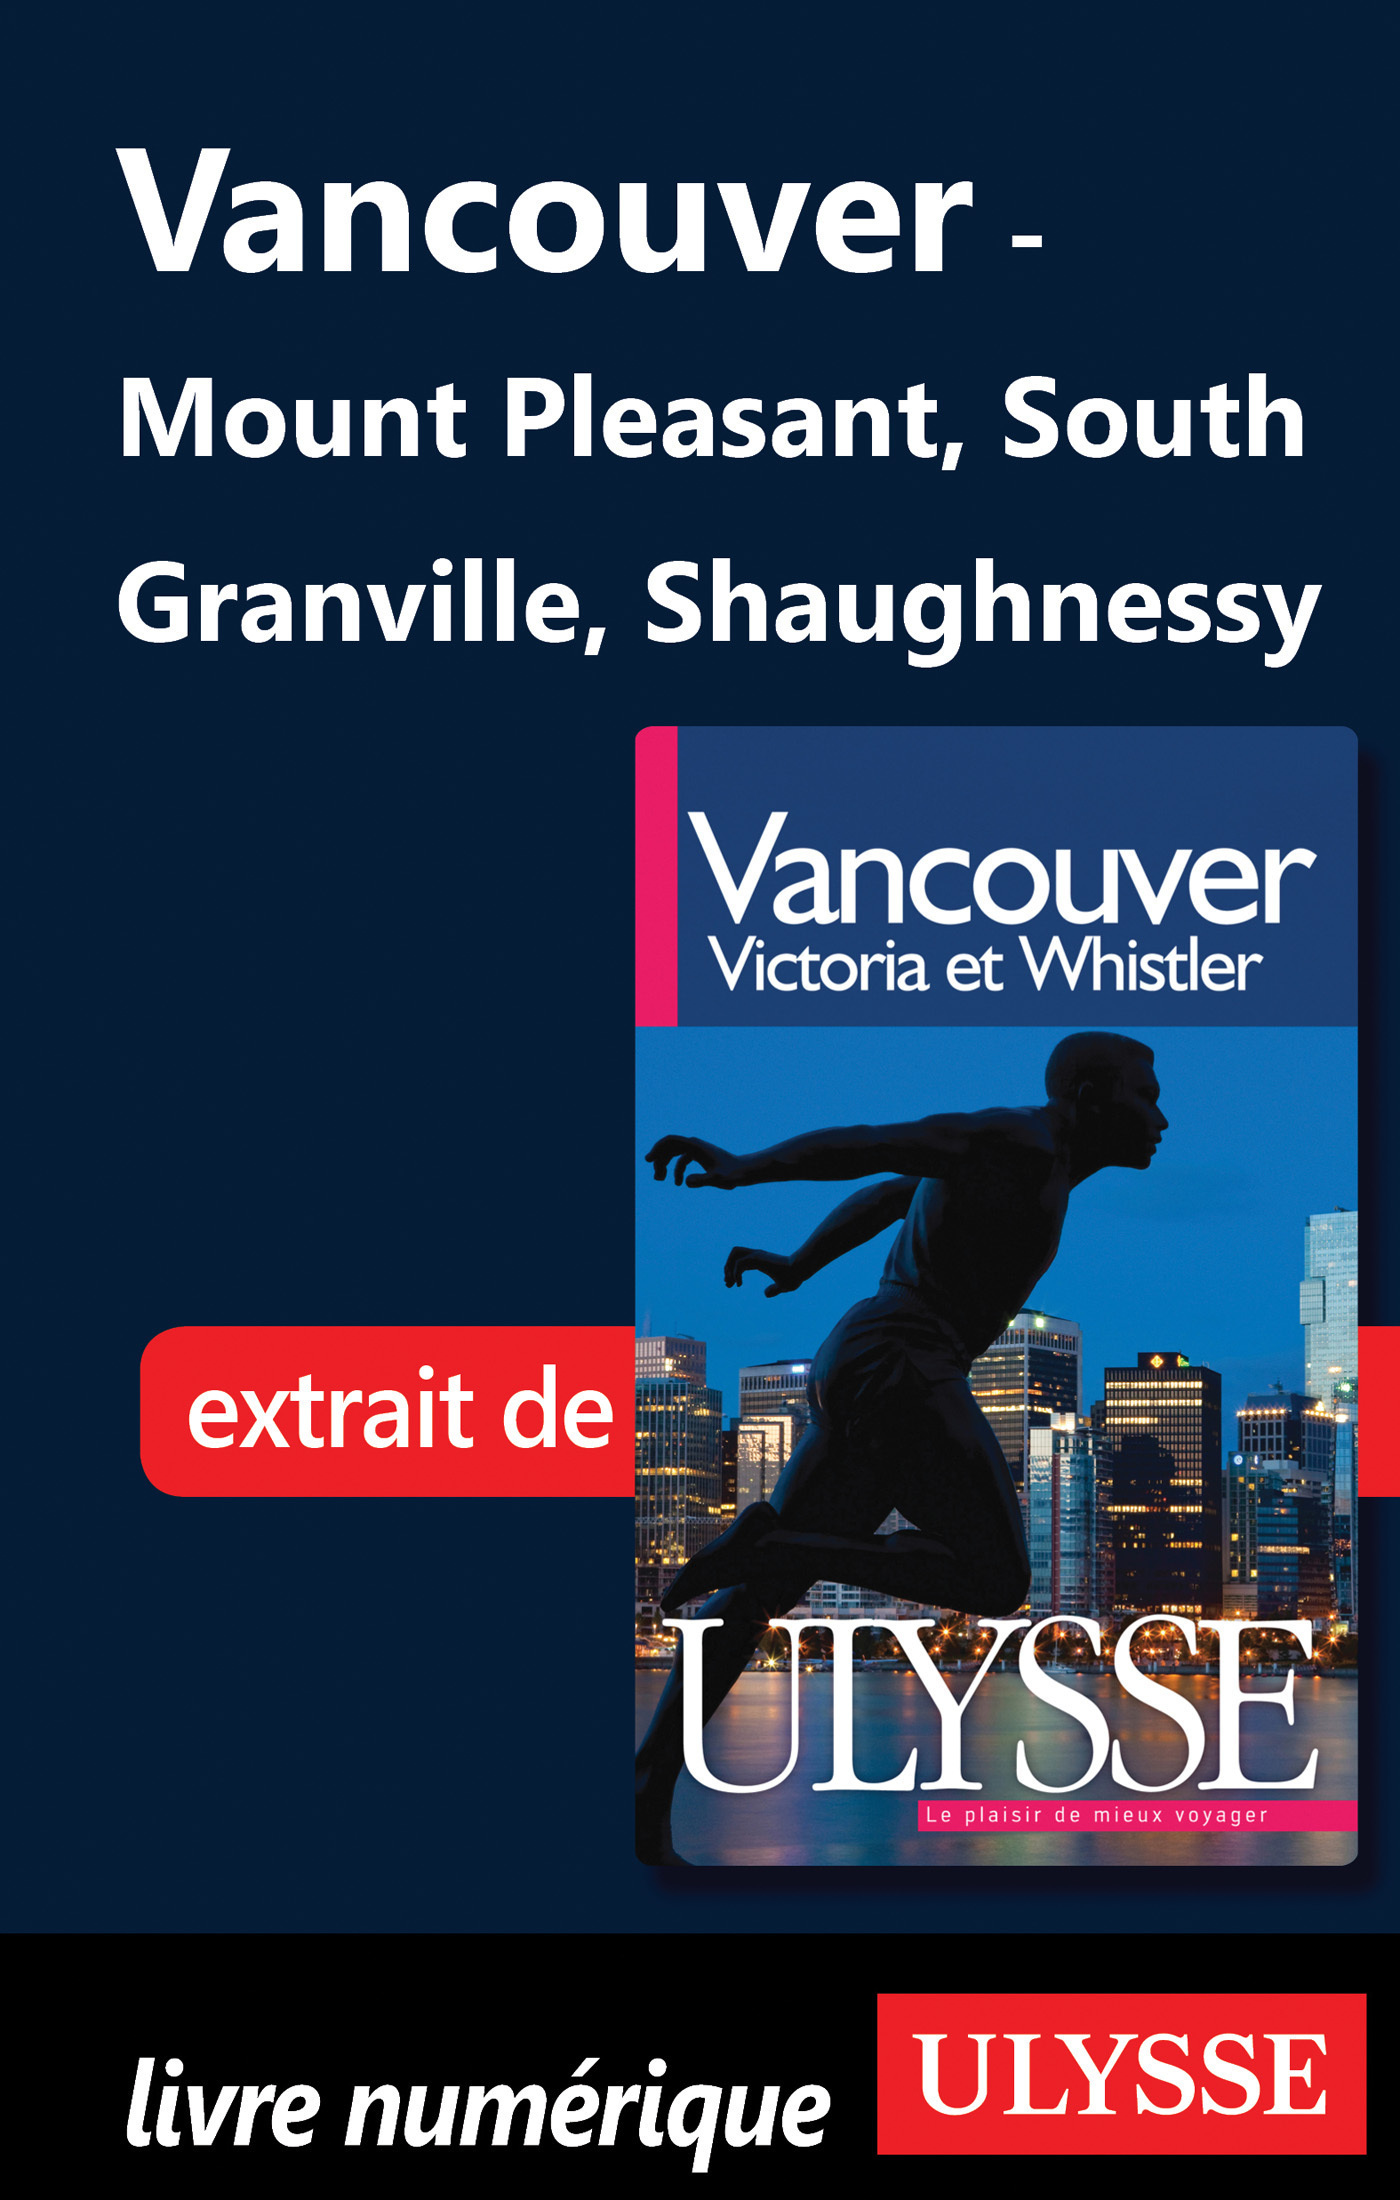 Vancouver : Mount Sleasant South Granville Shaughnessy